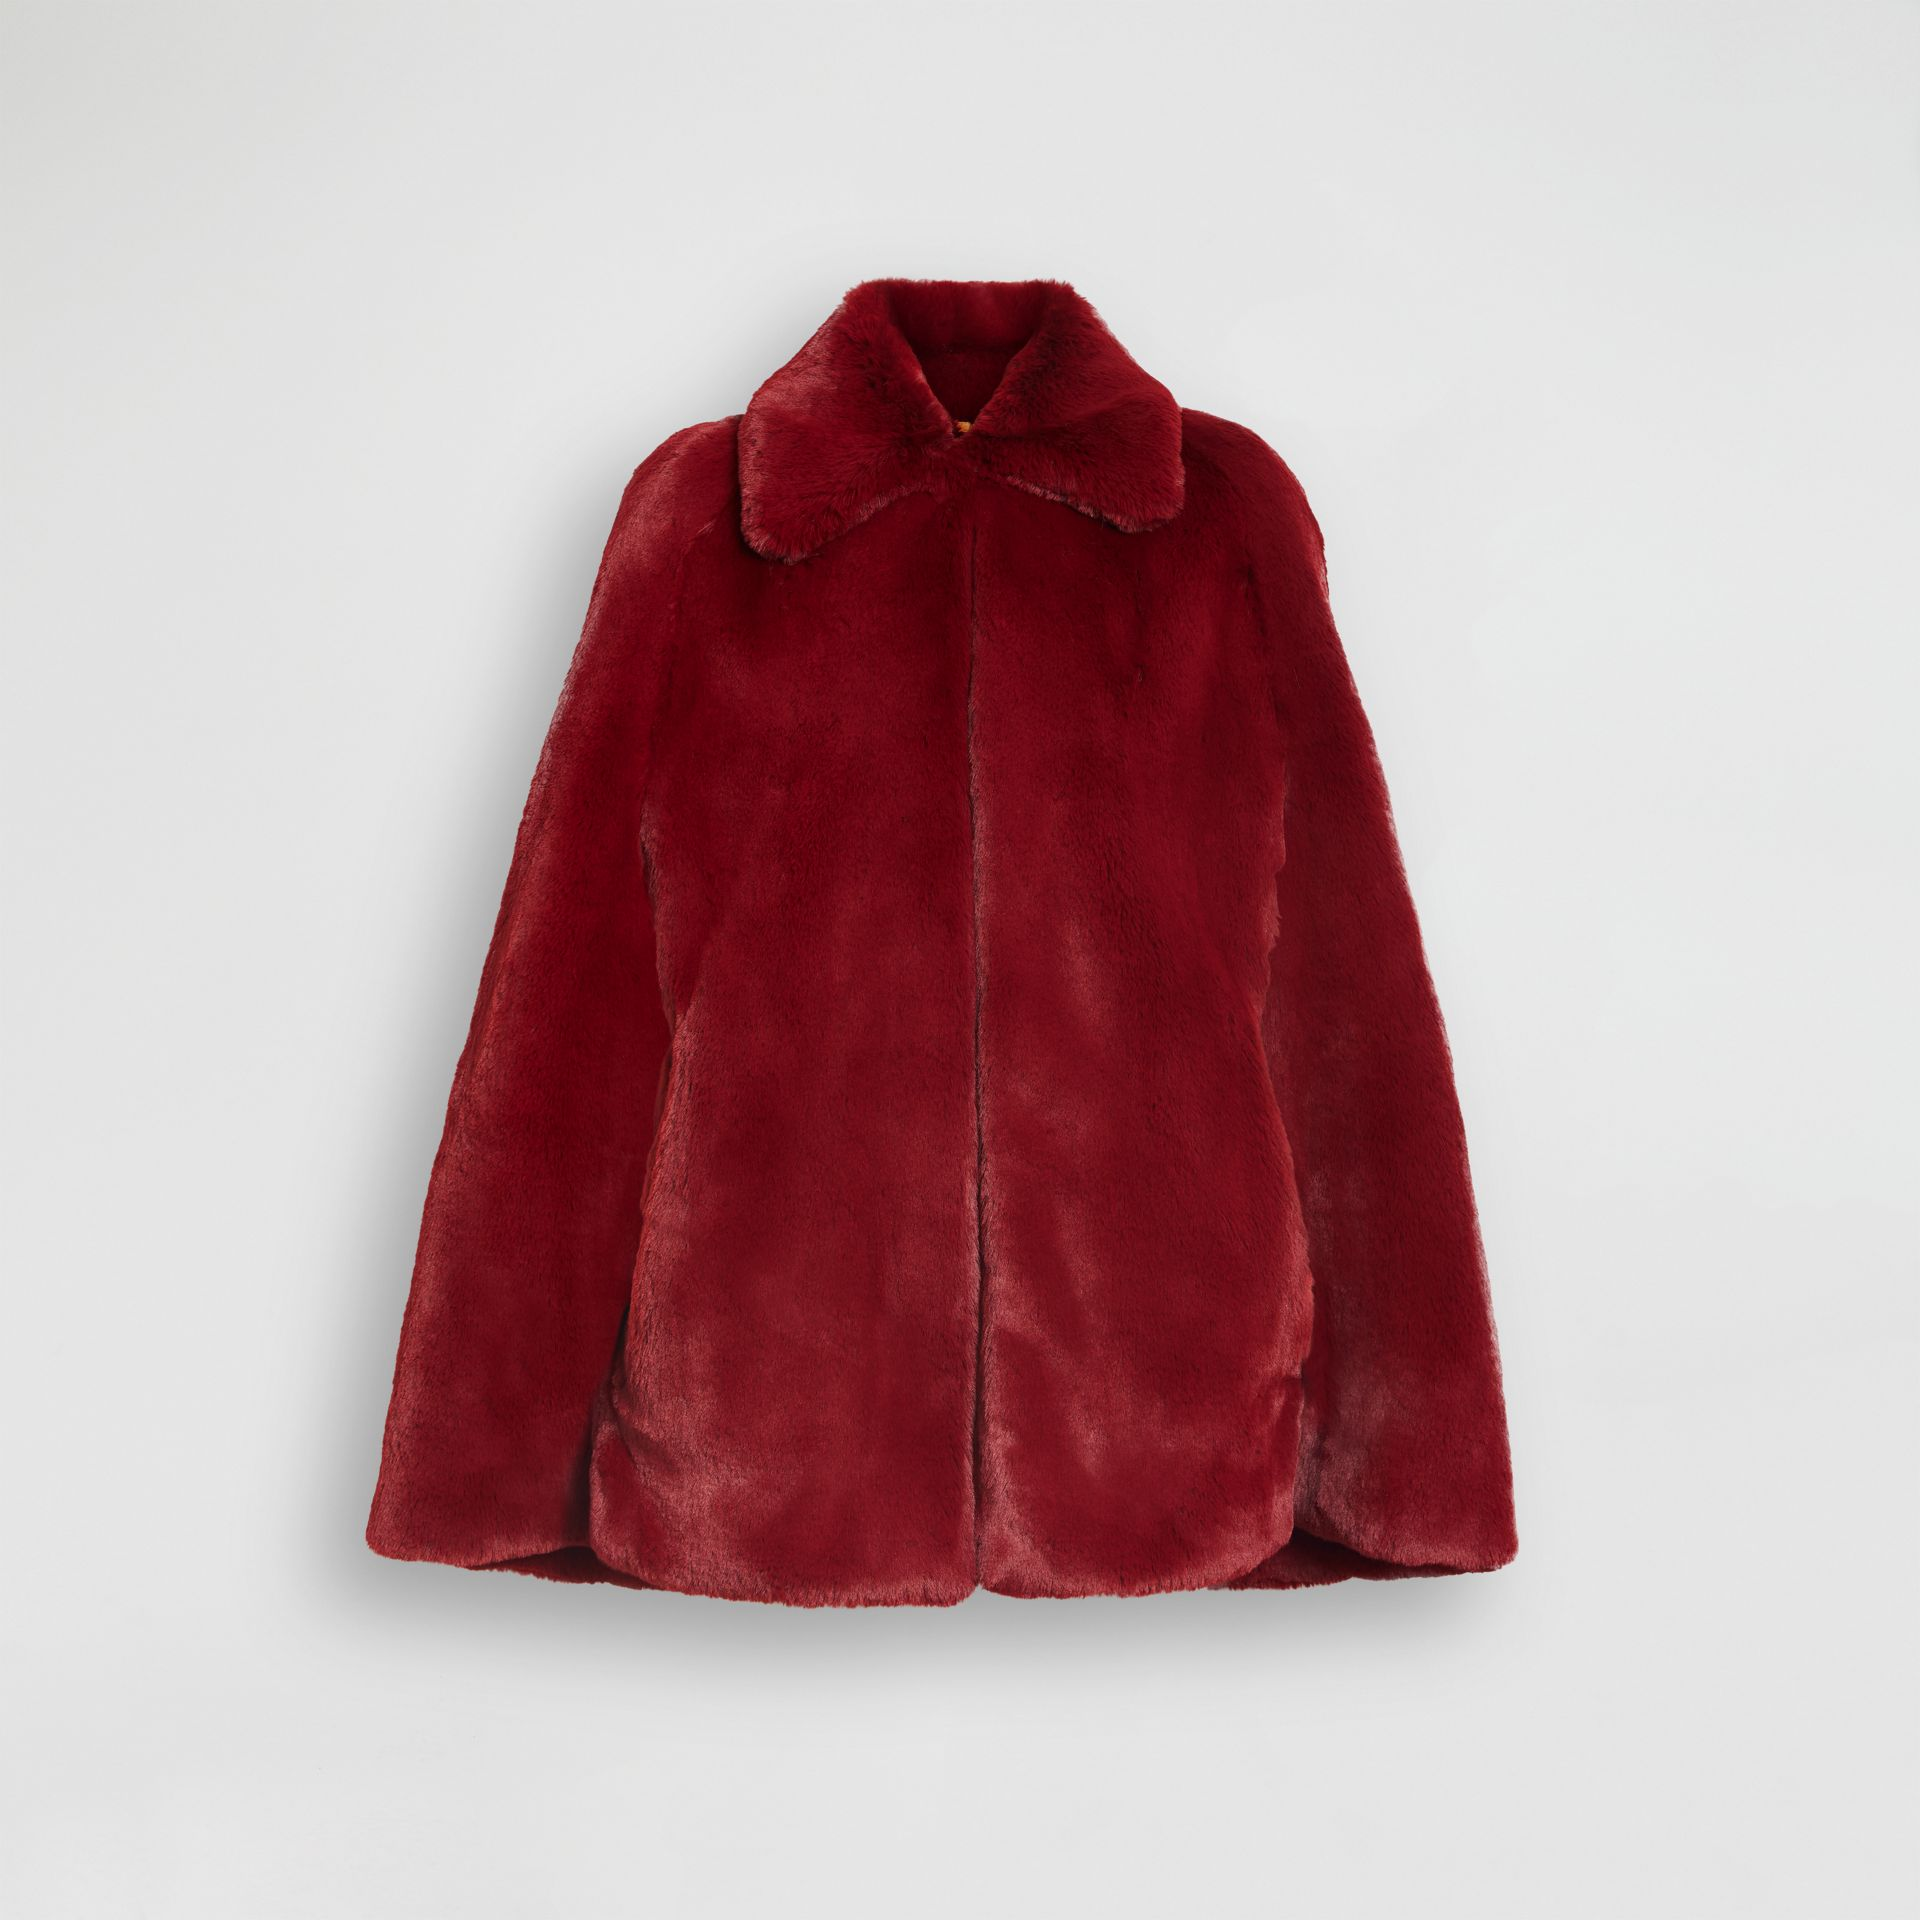 Faux Fur Cape in Burgundy - Women | Burberry - gallery image 3